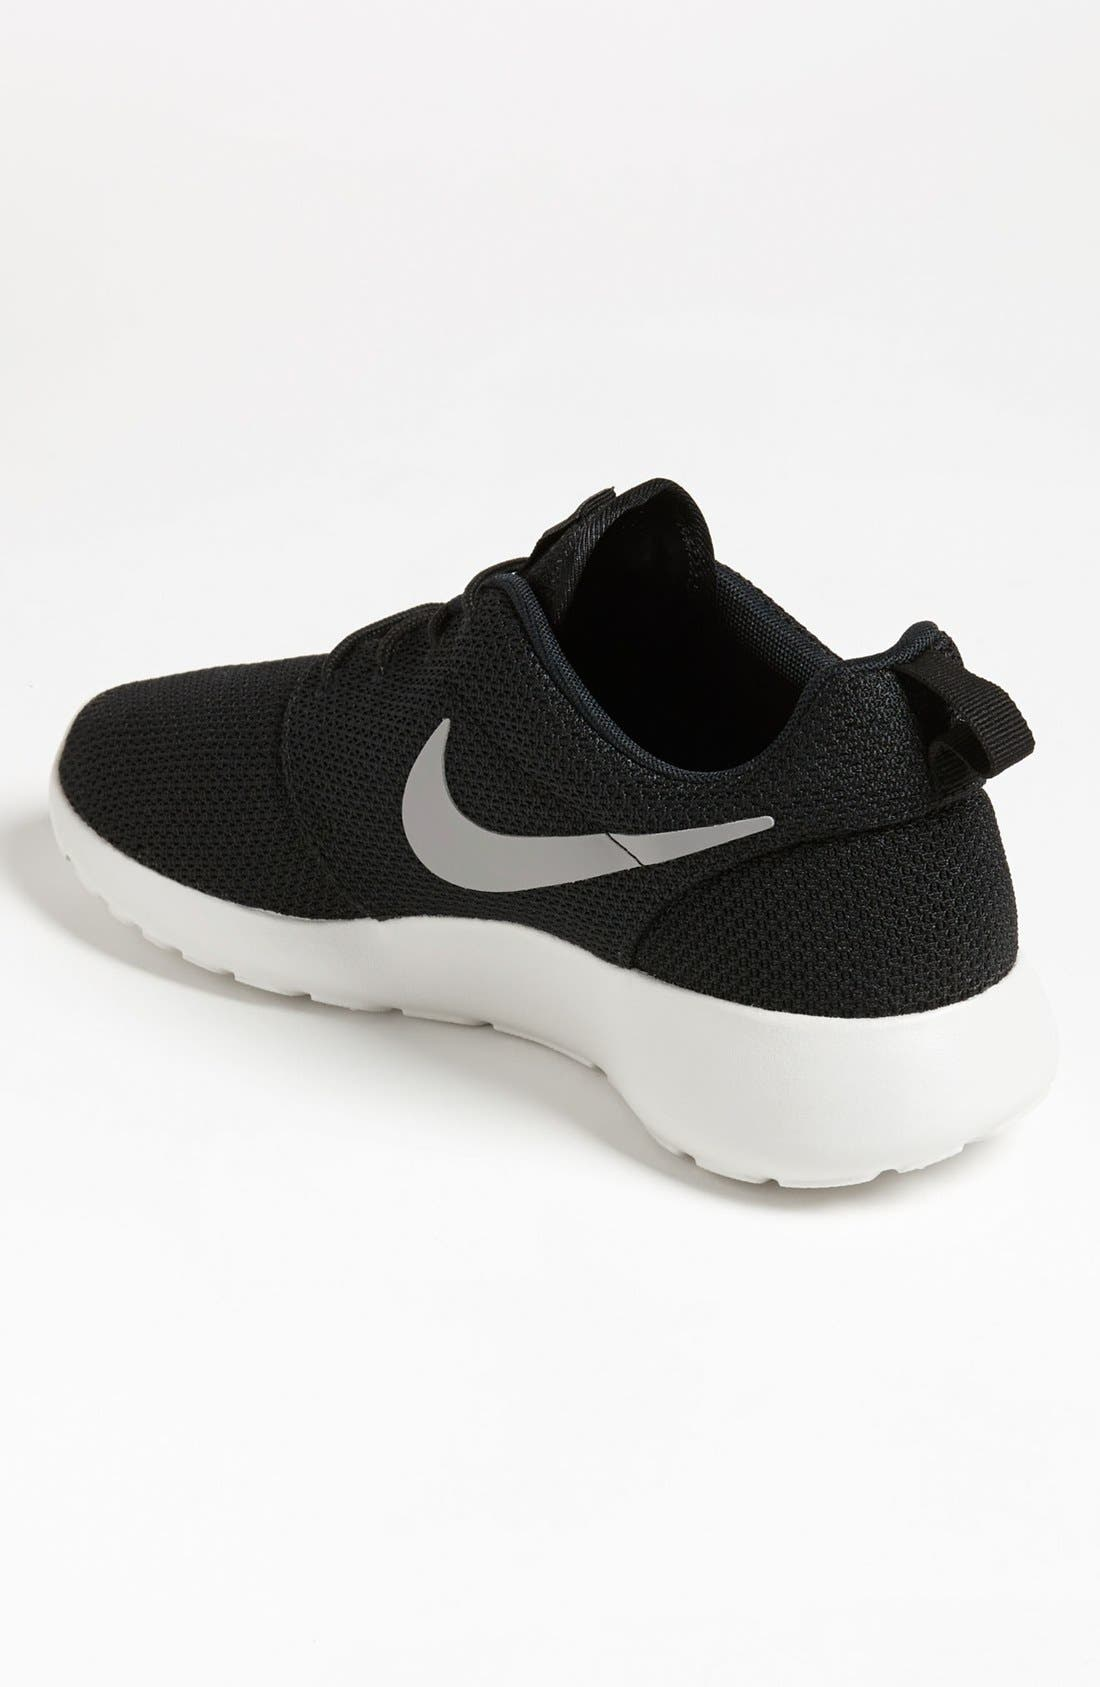 'Roshe Run' Sneaker,                             Alternate thumbnail 3, color,                             004